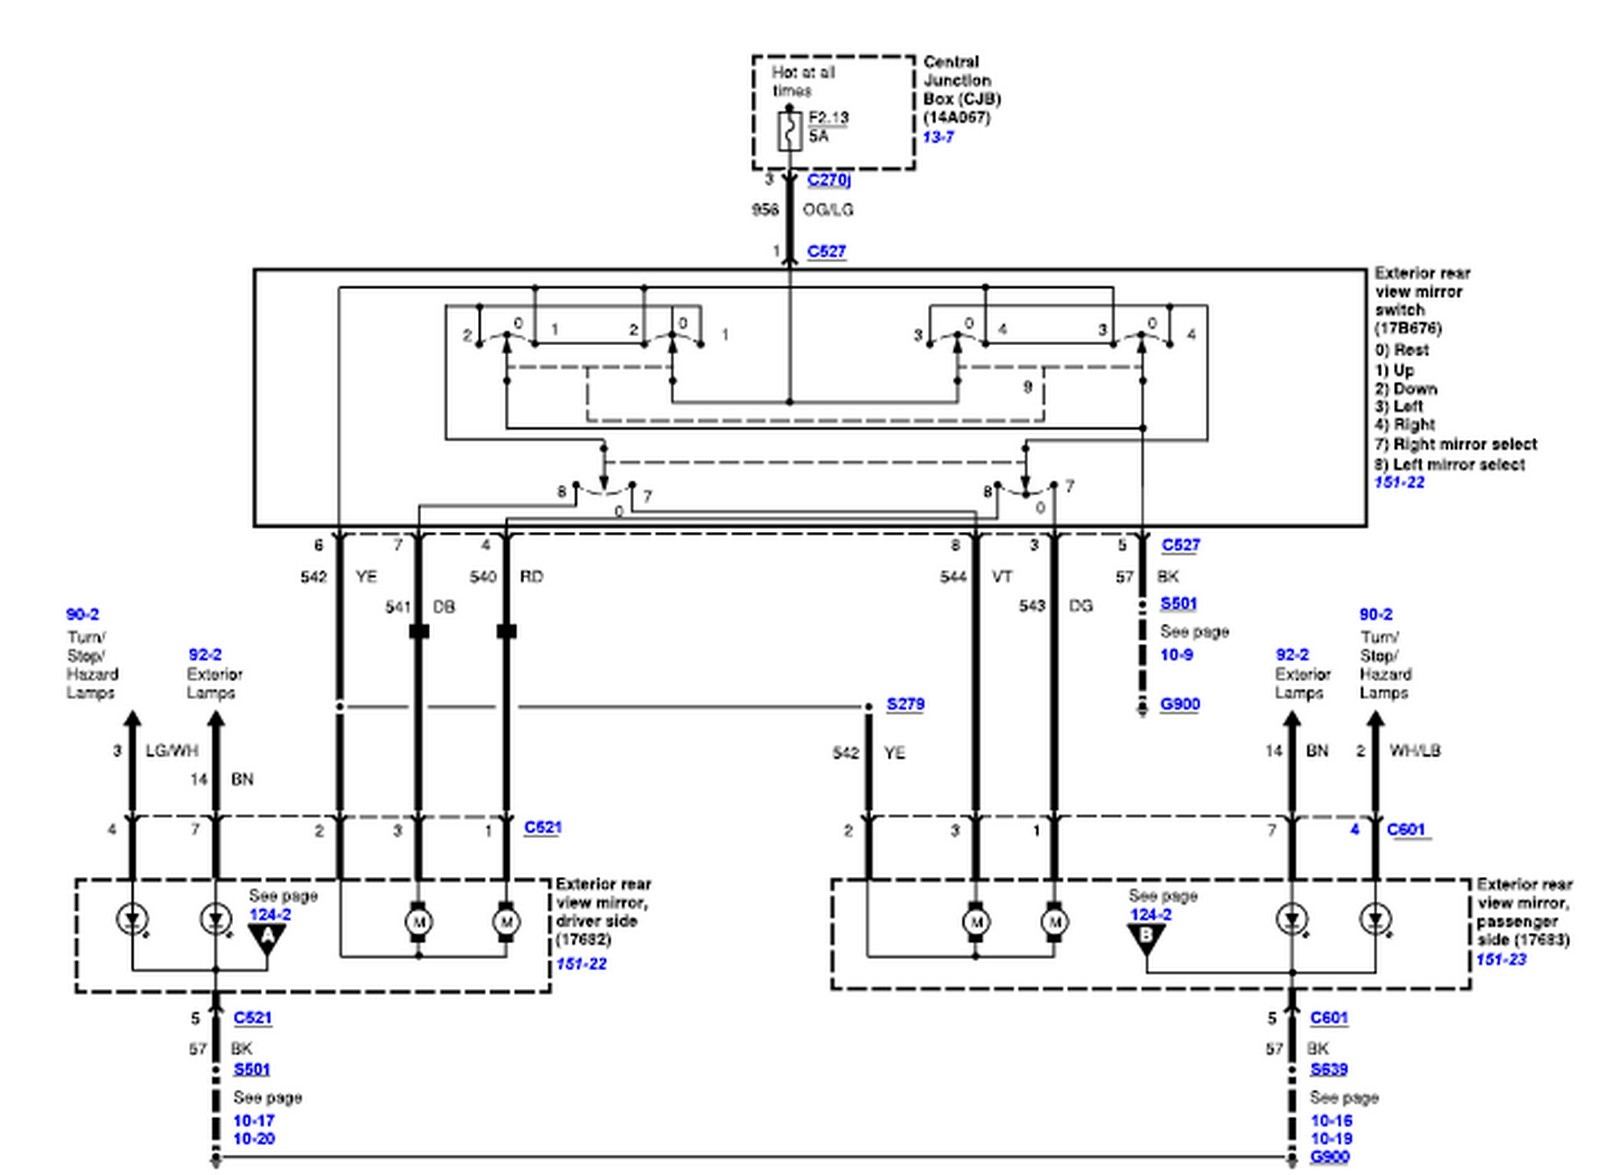 hight resolution of whelen lights diagram the structural wiring diagram u2022 rh sadrazp com whelen liberty led wiring diagram